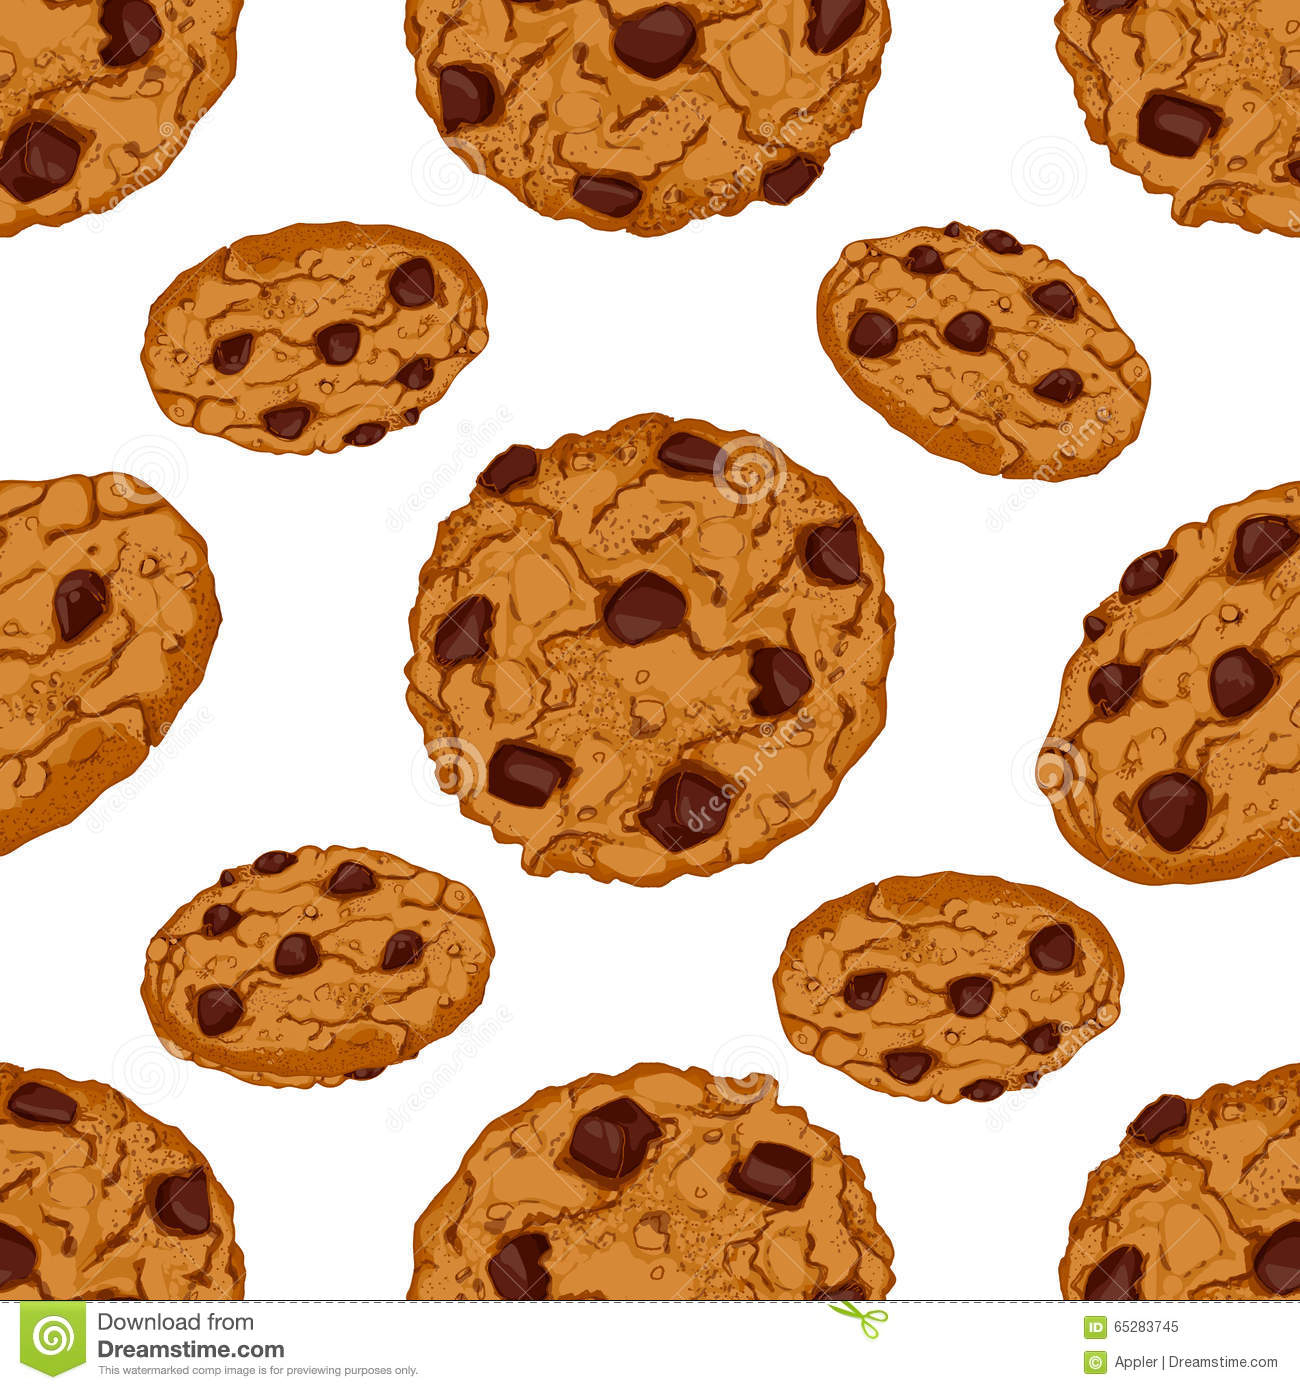 1300x1390 Chocolate Chip Cookie Drawing Seamless Pattern With Chocolate Chip